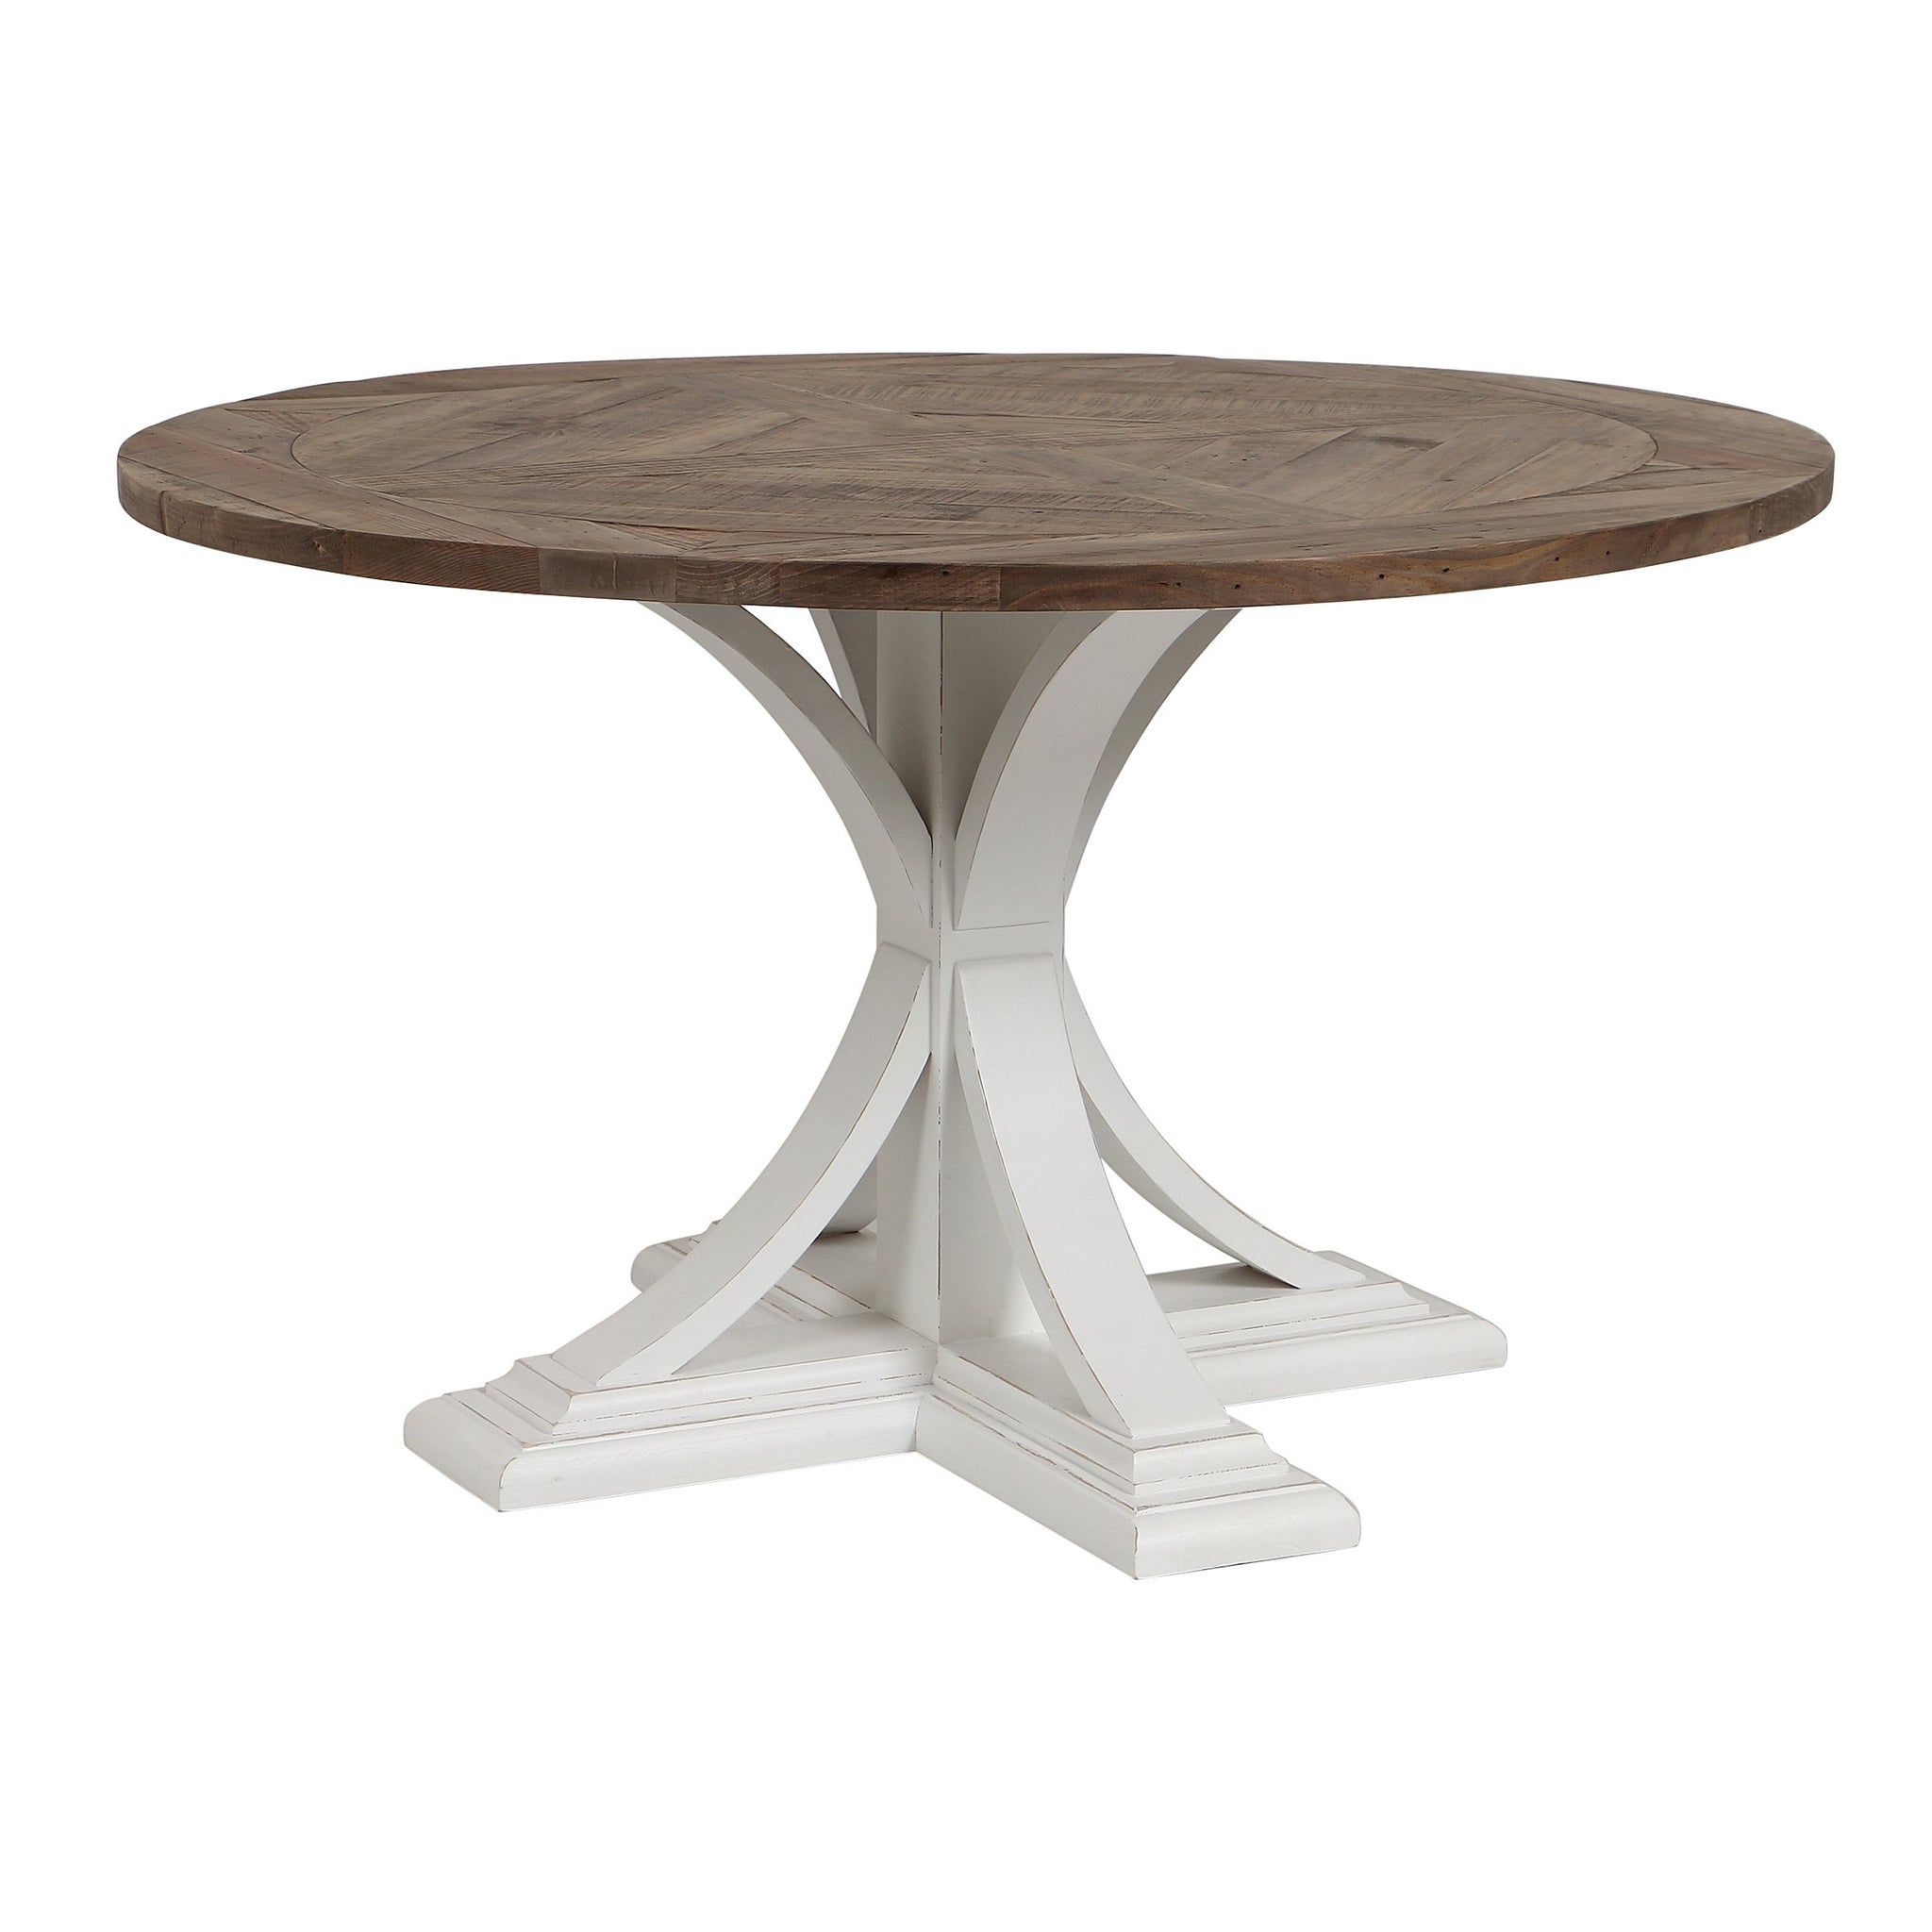 Riviera Round Dining Table White Natural Wood The French Villa